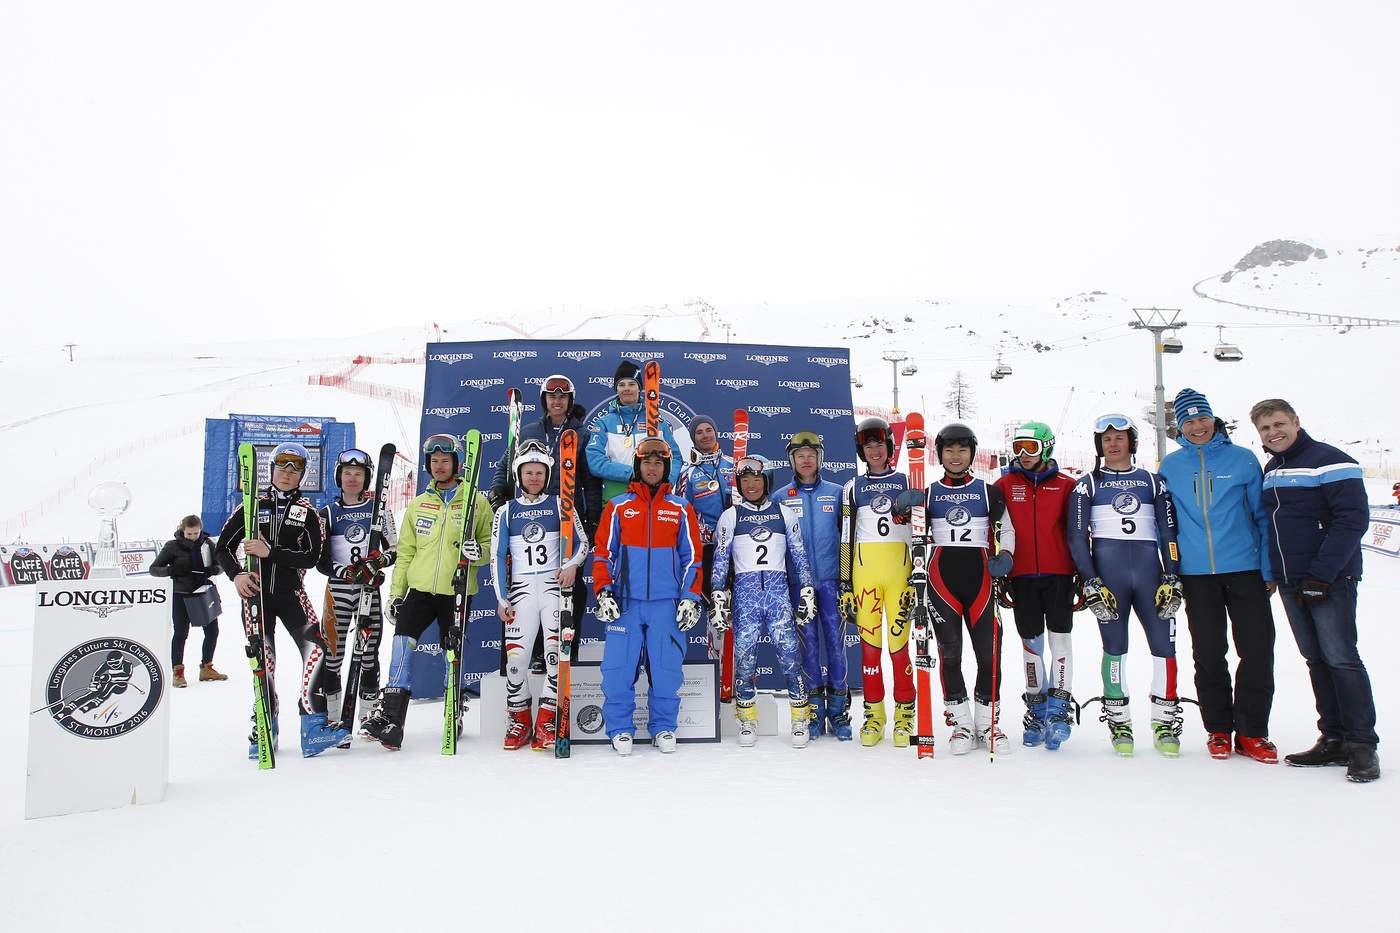 Longines Alpine Skiing Event: A new venue for the third edition of the Longines Future Ski Champions 6